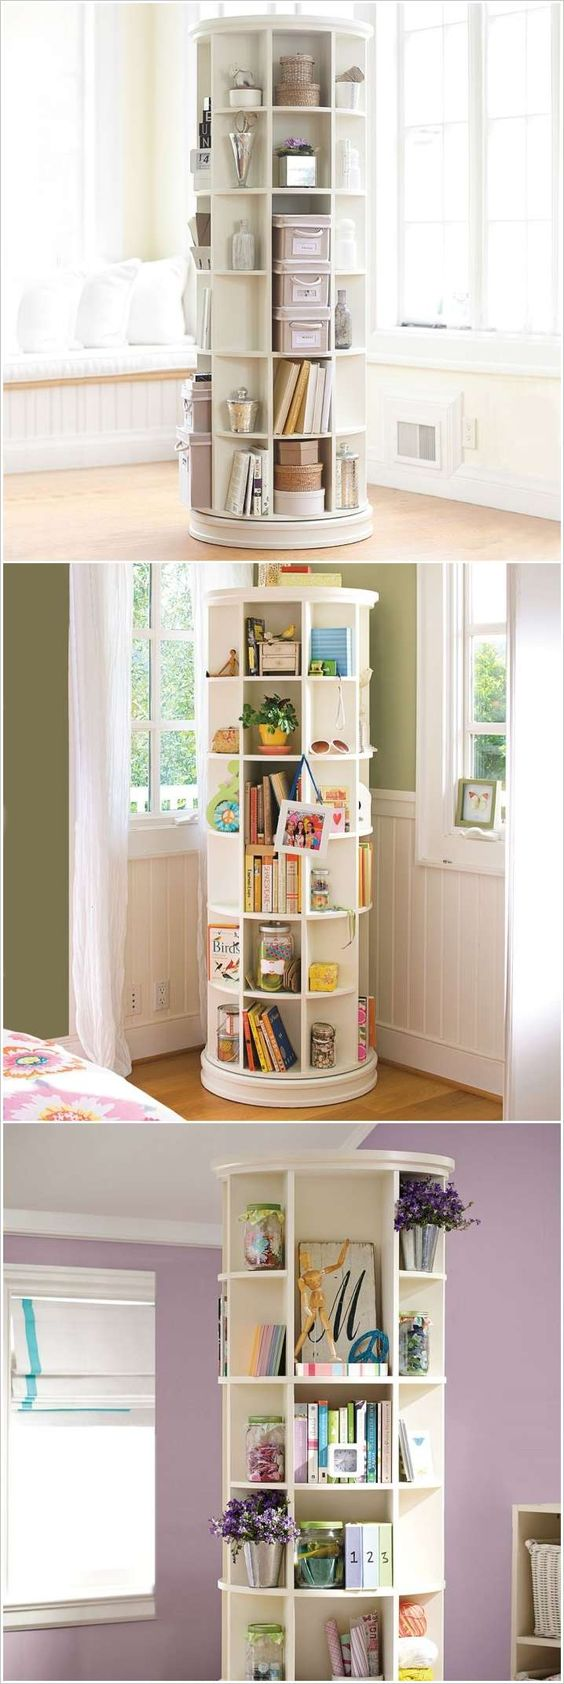 A Revolving Bookcase Loaded with Storage Space